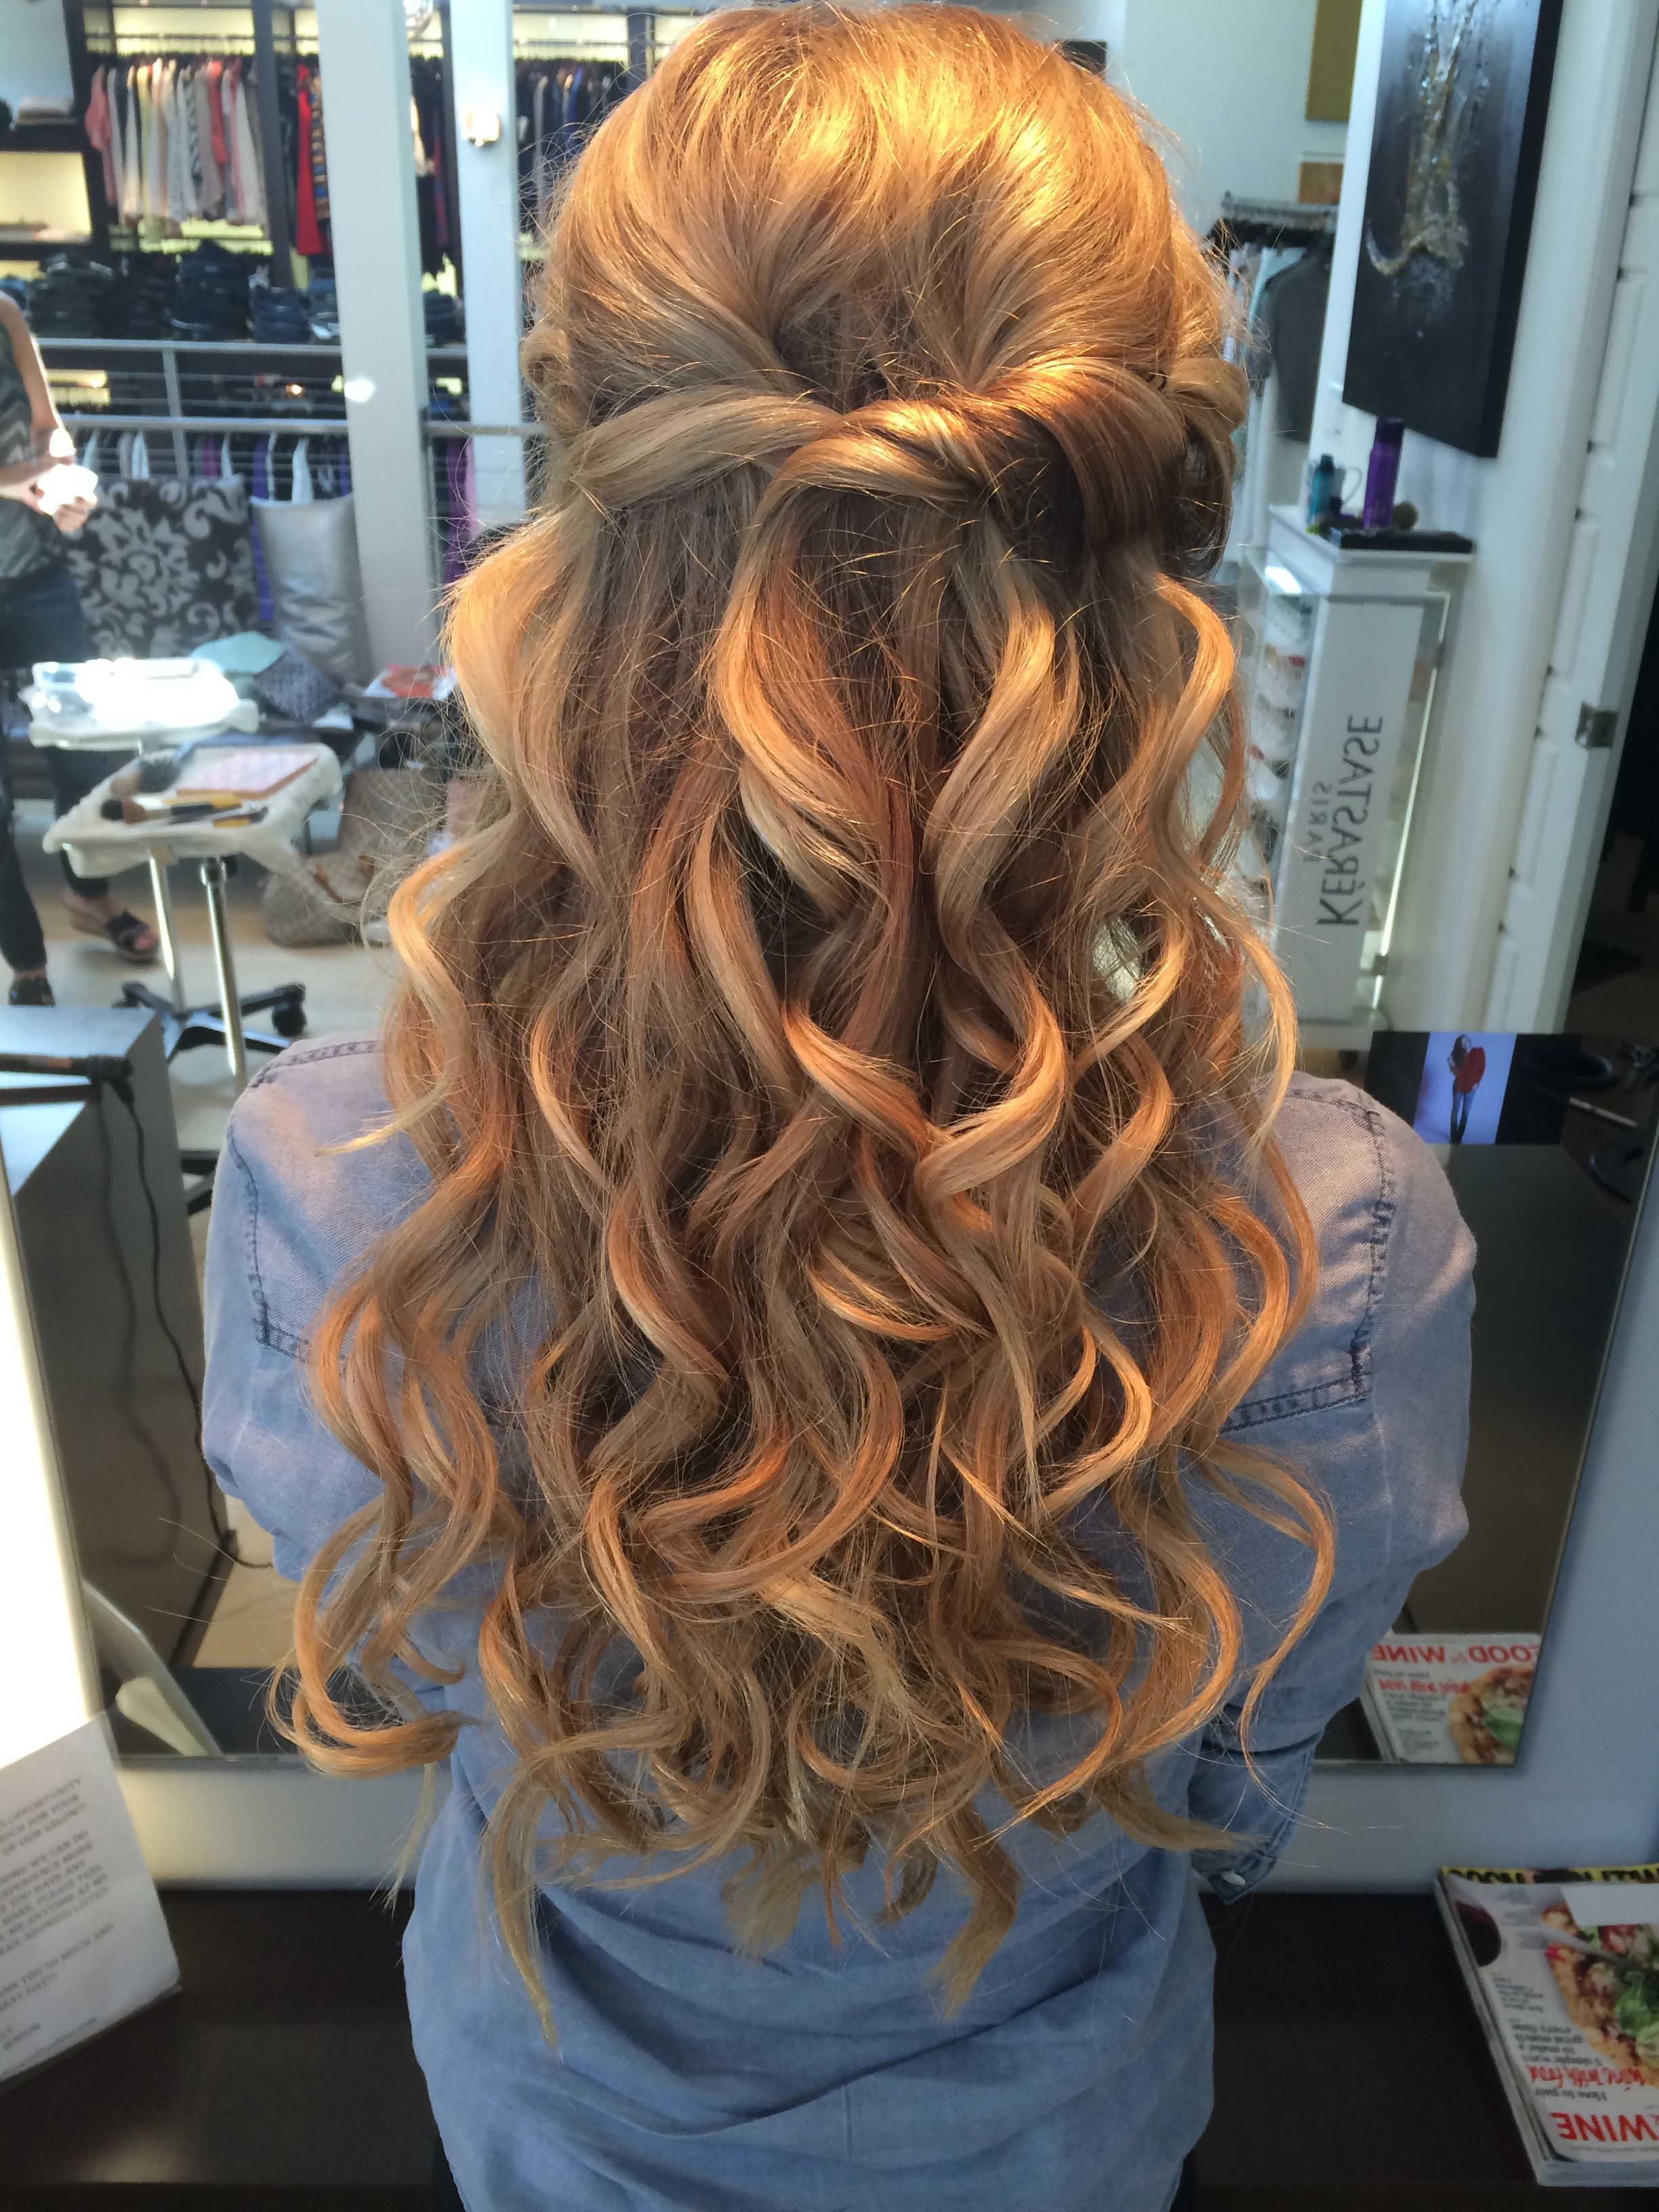 prom half up/ half down hair | sweet 16 | prom hairstyles